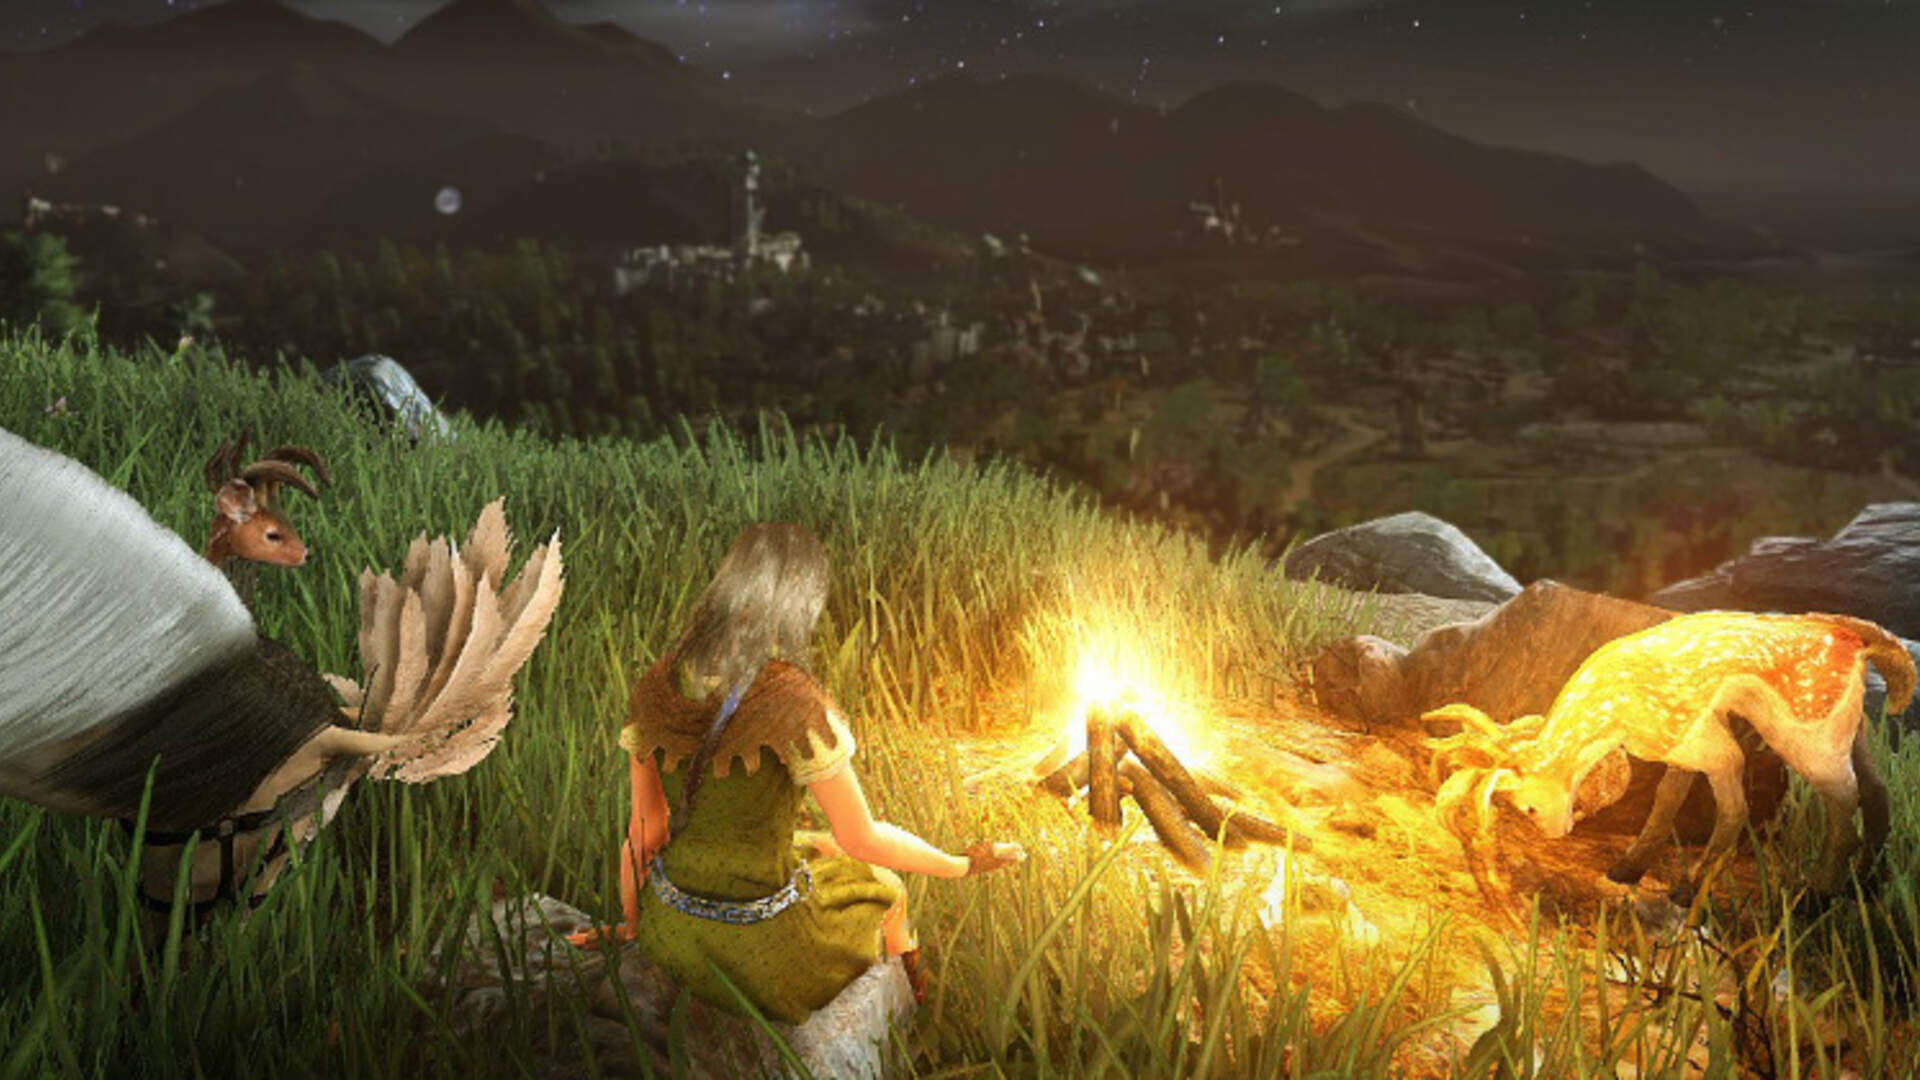 Black Desert Online PC Review: A Virtual Life as Complex as the Real One